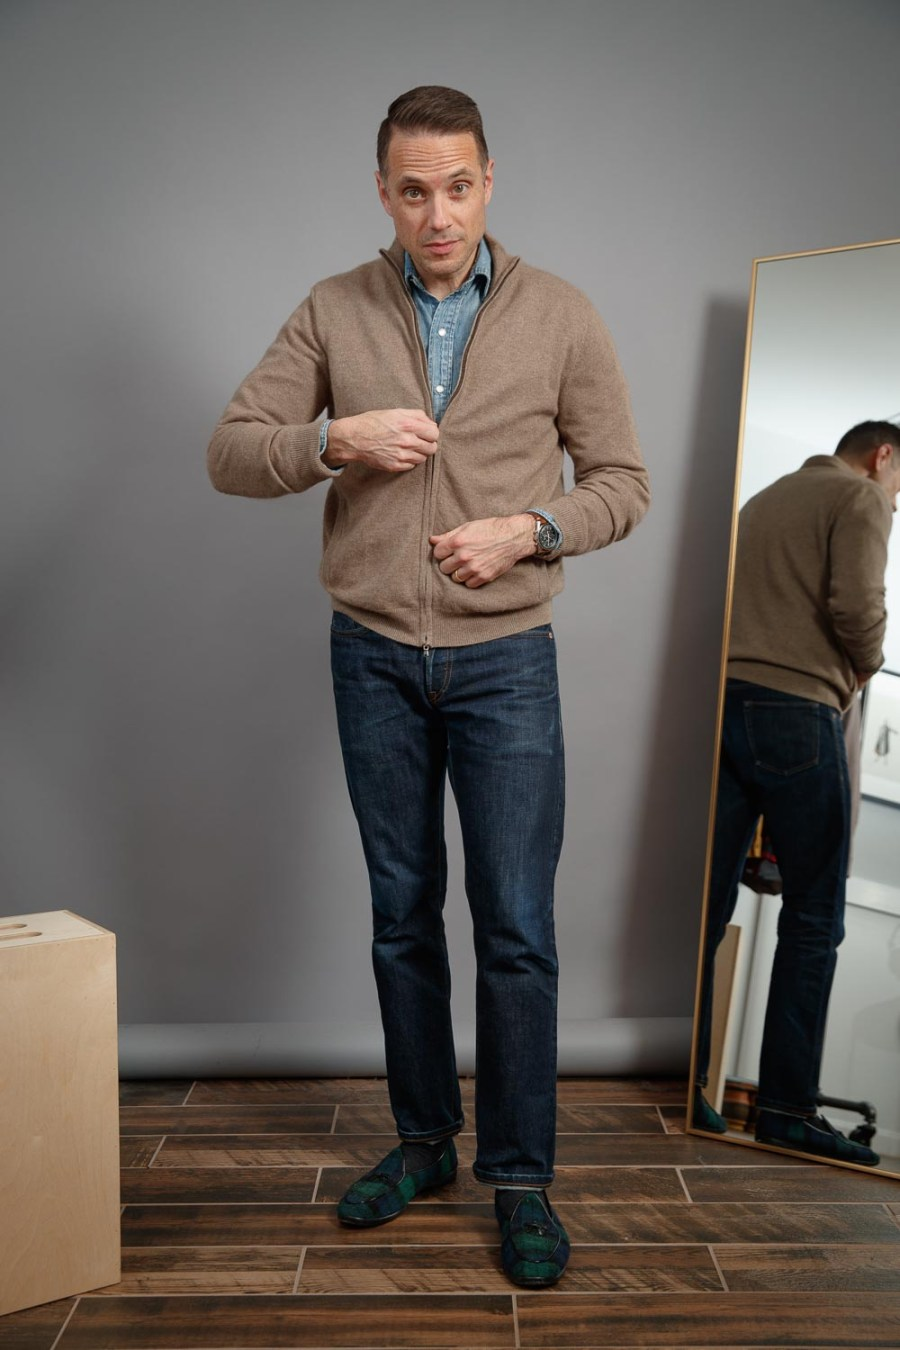 raw-denim-tan-cashmere-sweater-blackwatch-plaid-belgian-shoes-omega-speedmaster-casual-winter-outfit-for-men